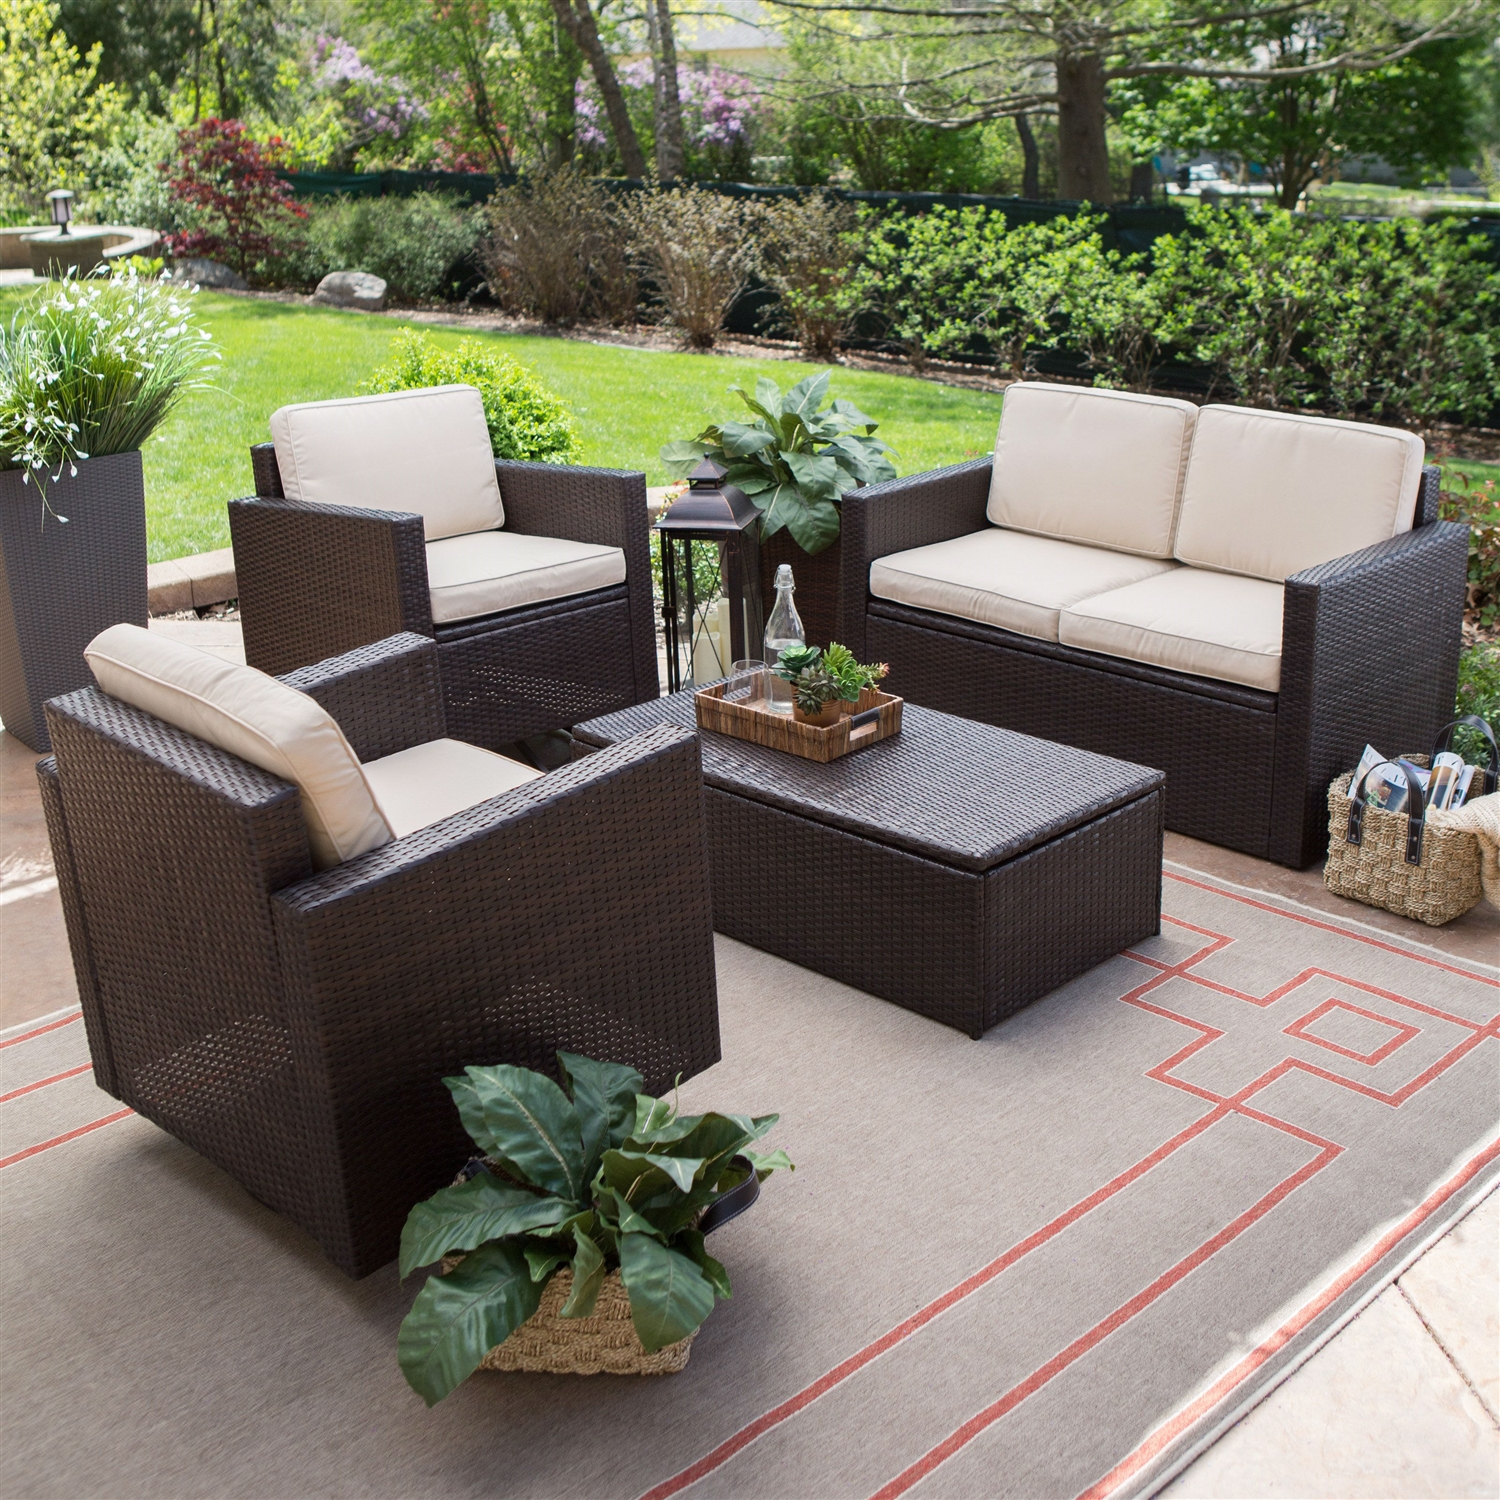 Outdoor Wicker Resin 4 Piece Patio Furniture Dinning Set with 2